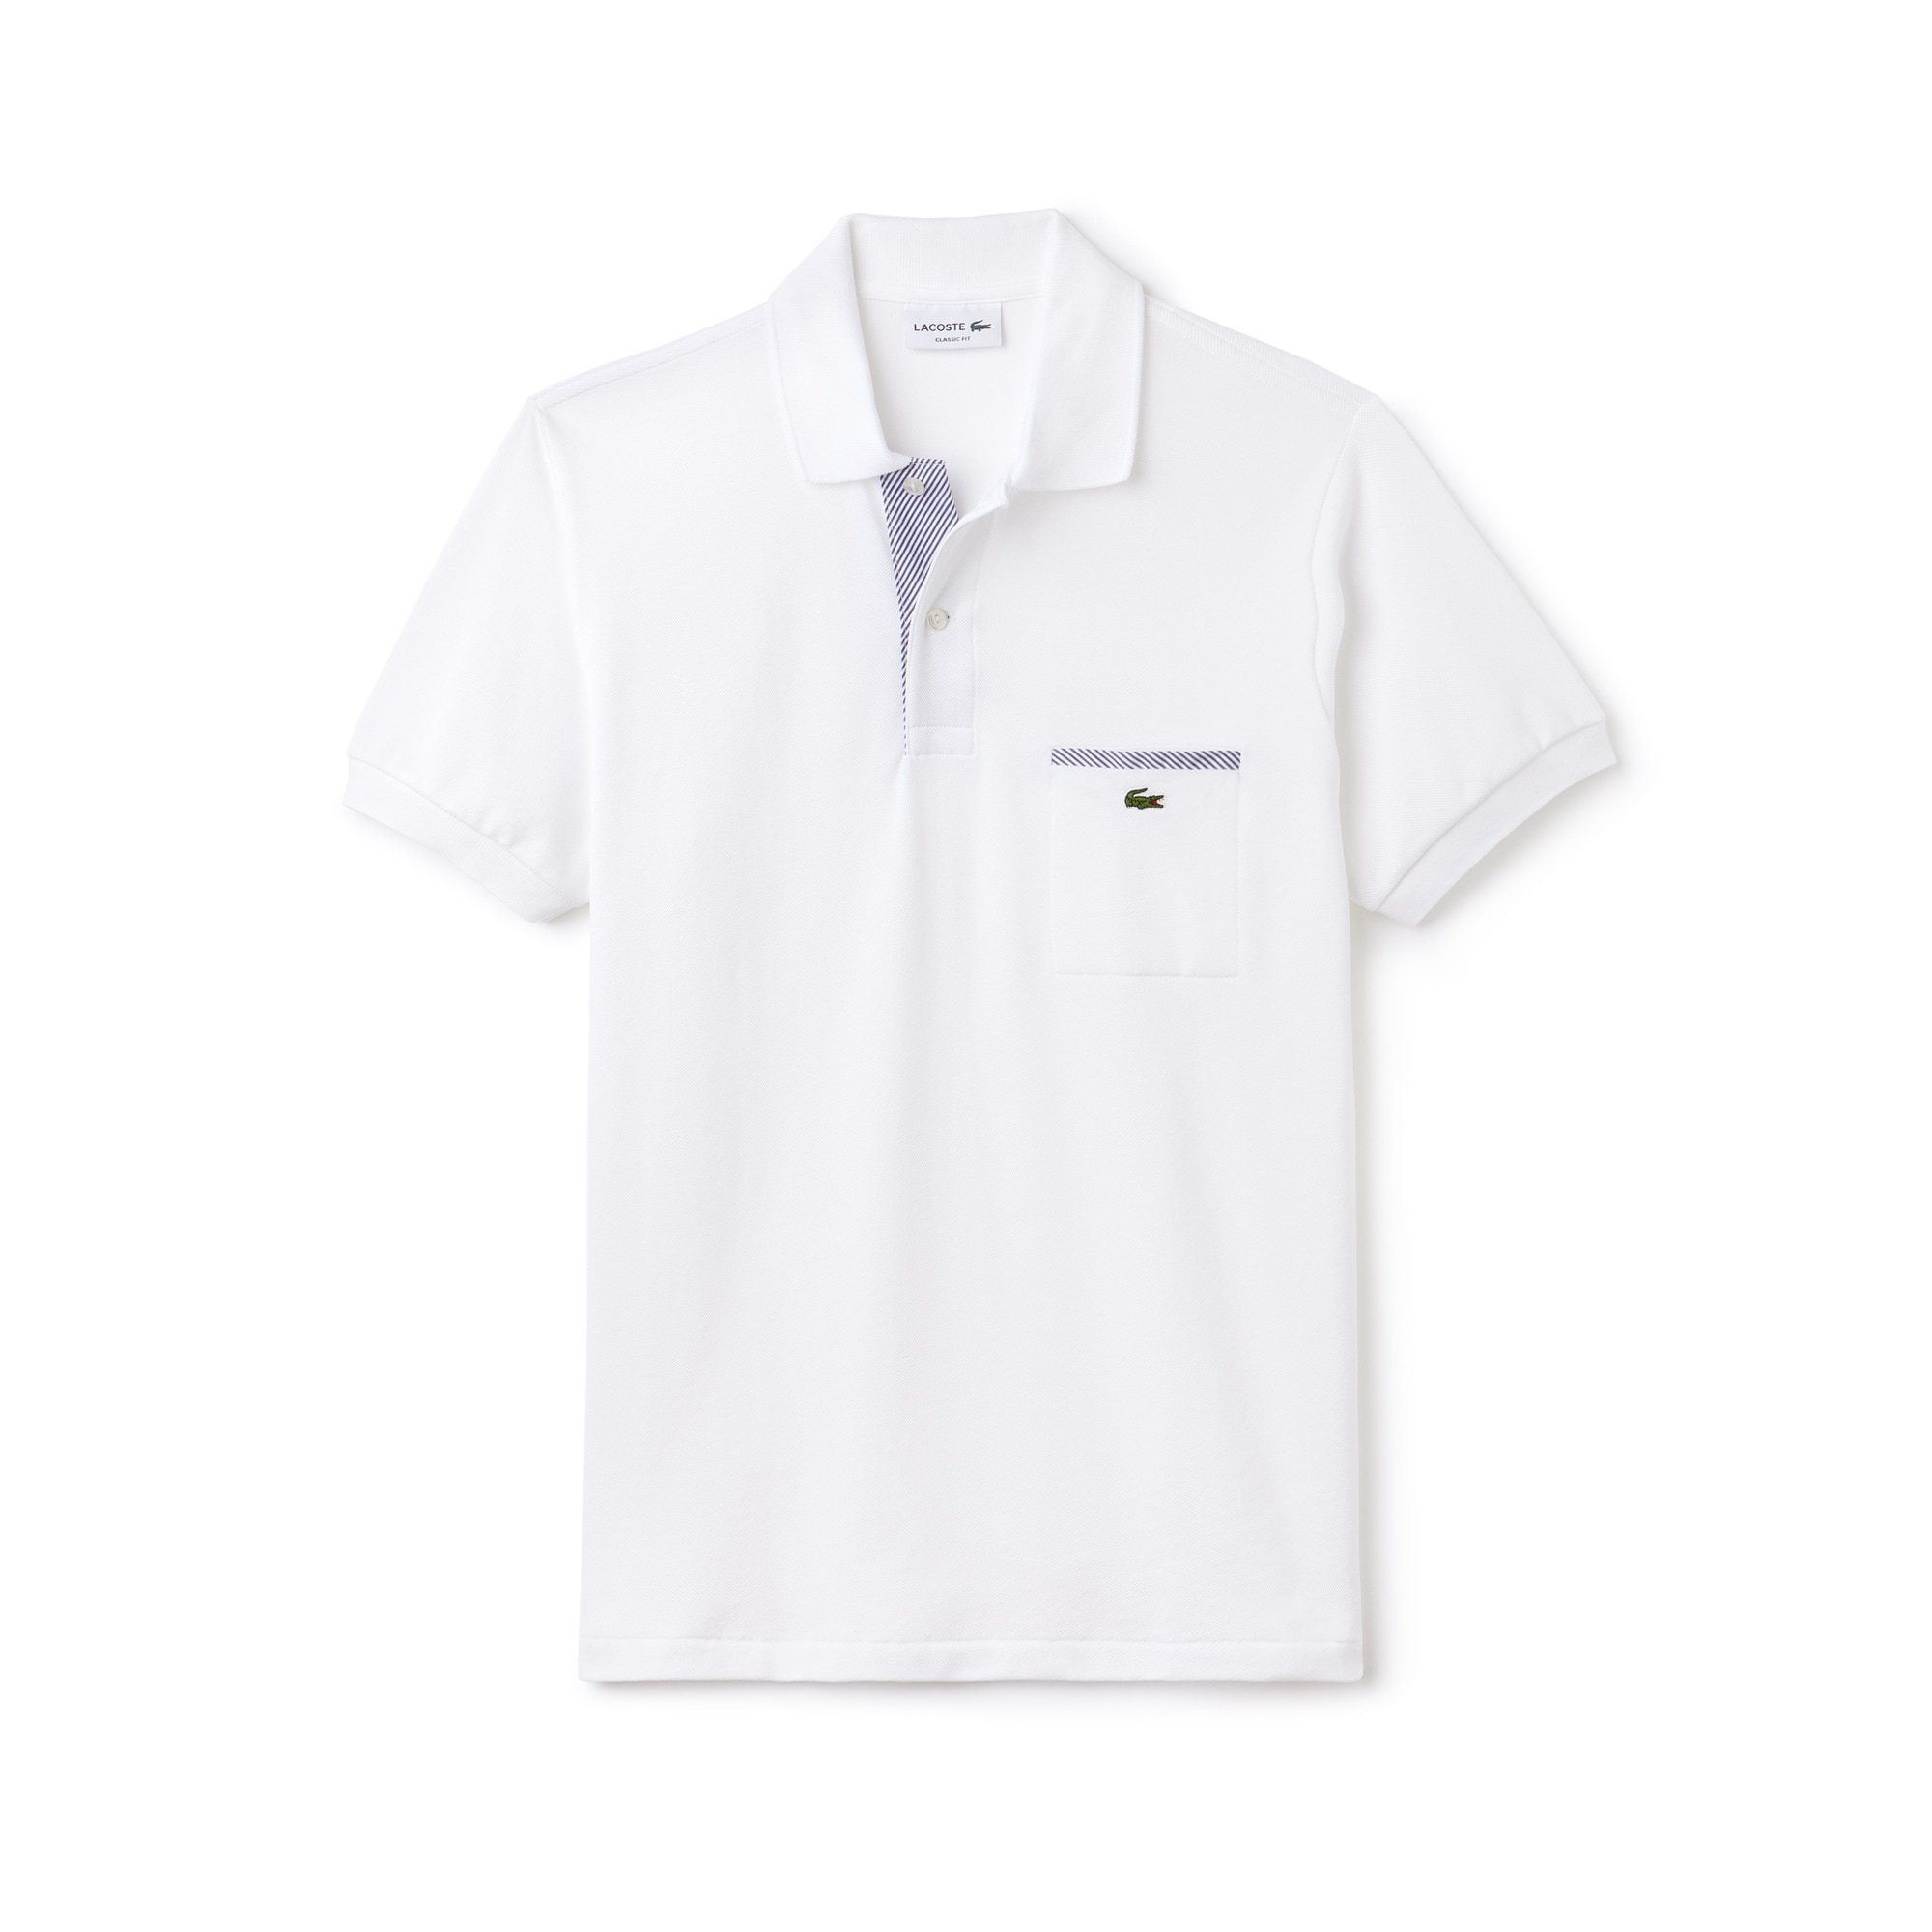 Lacoste L.12.12 Polo Shirt with contrasting details